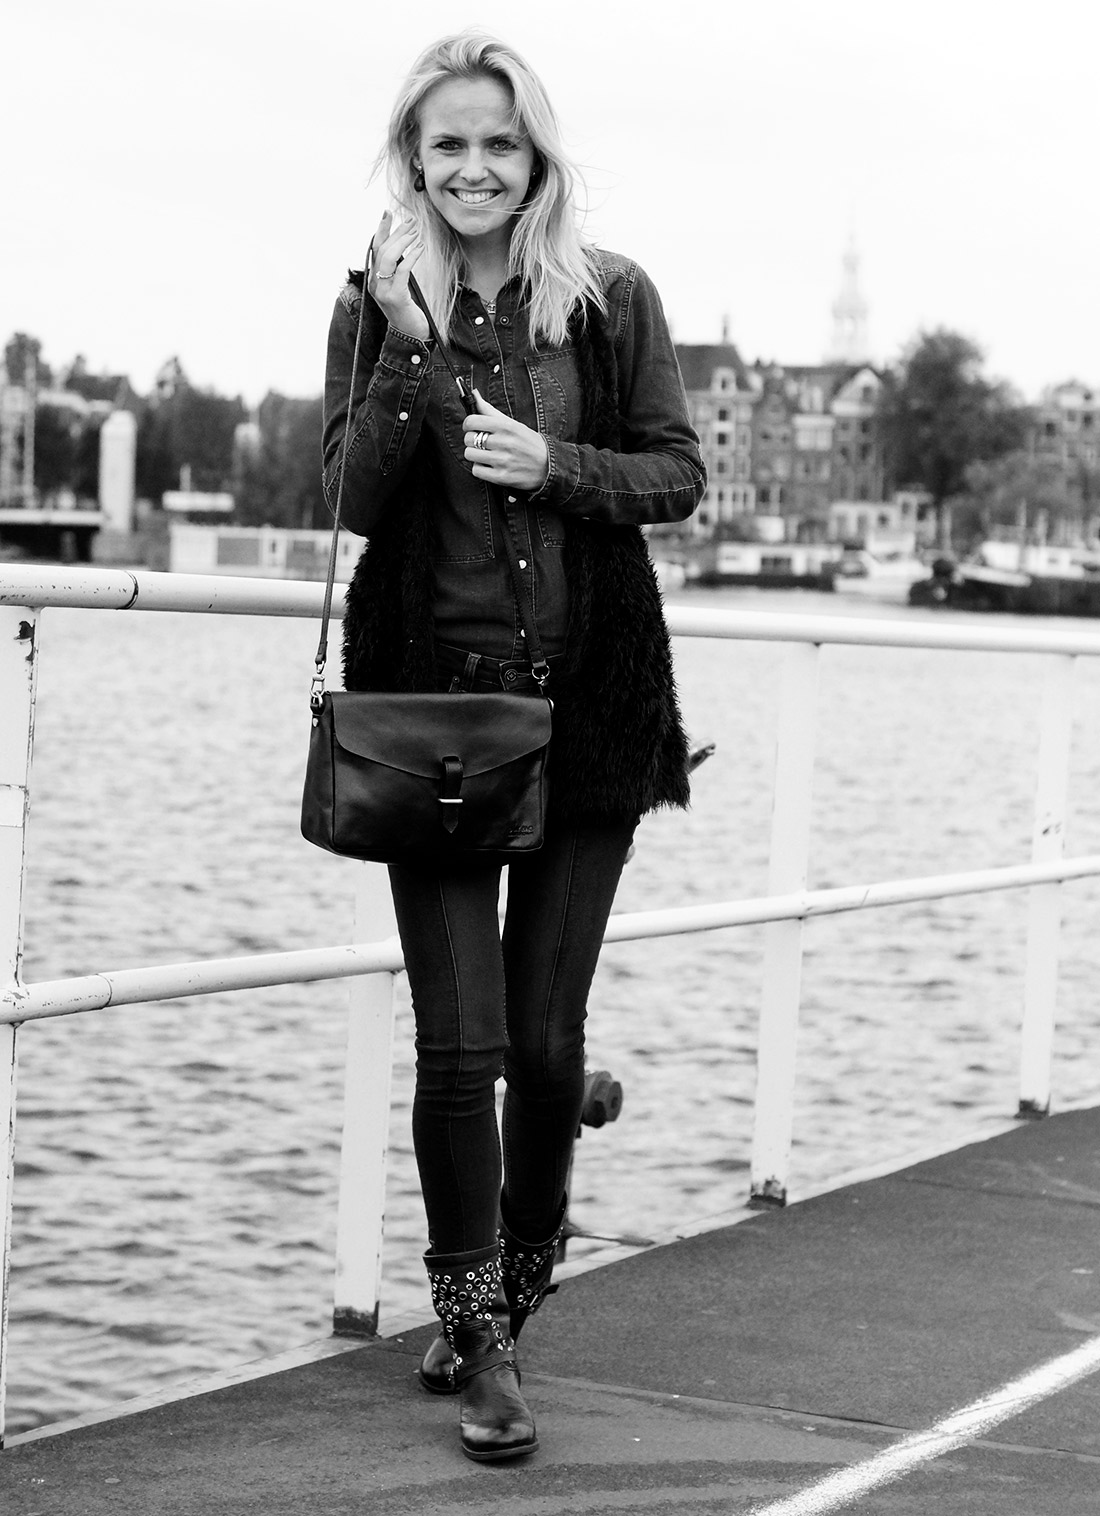 Bag-at-You---Fashion-blog---Lena-the-fashion-library---Denim-suit---O-My-Bag-bag---Black-boots